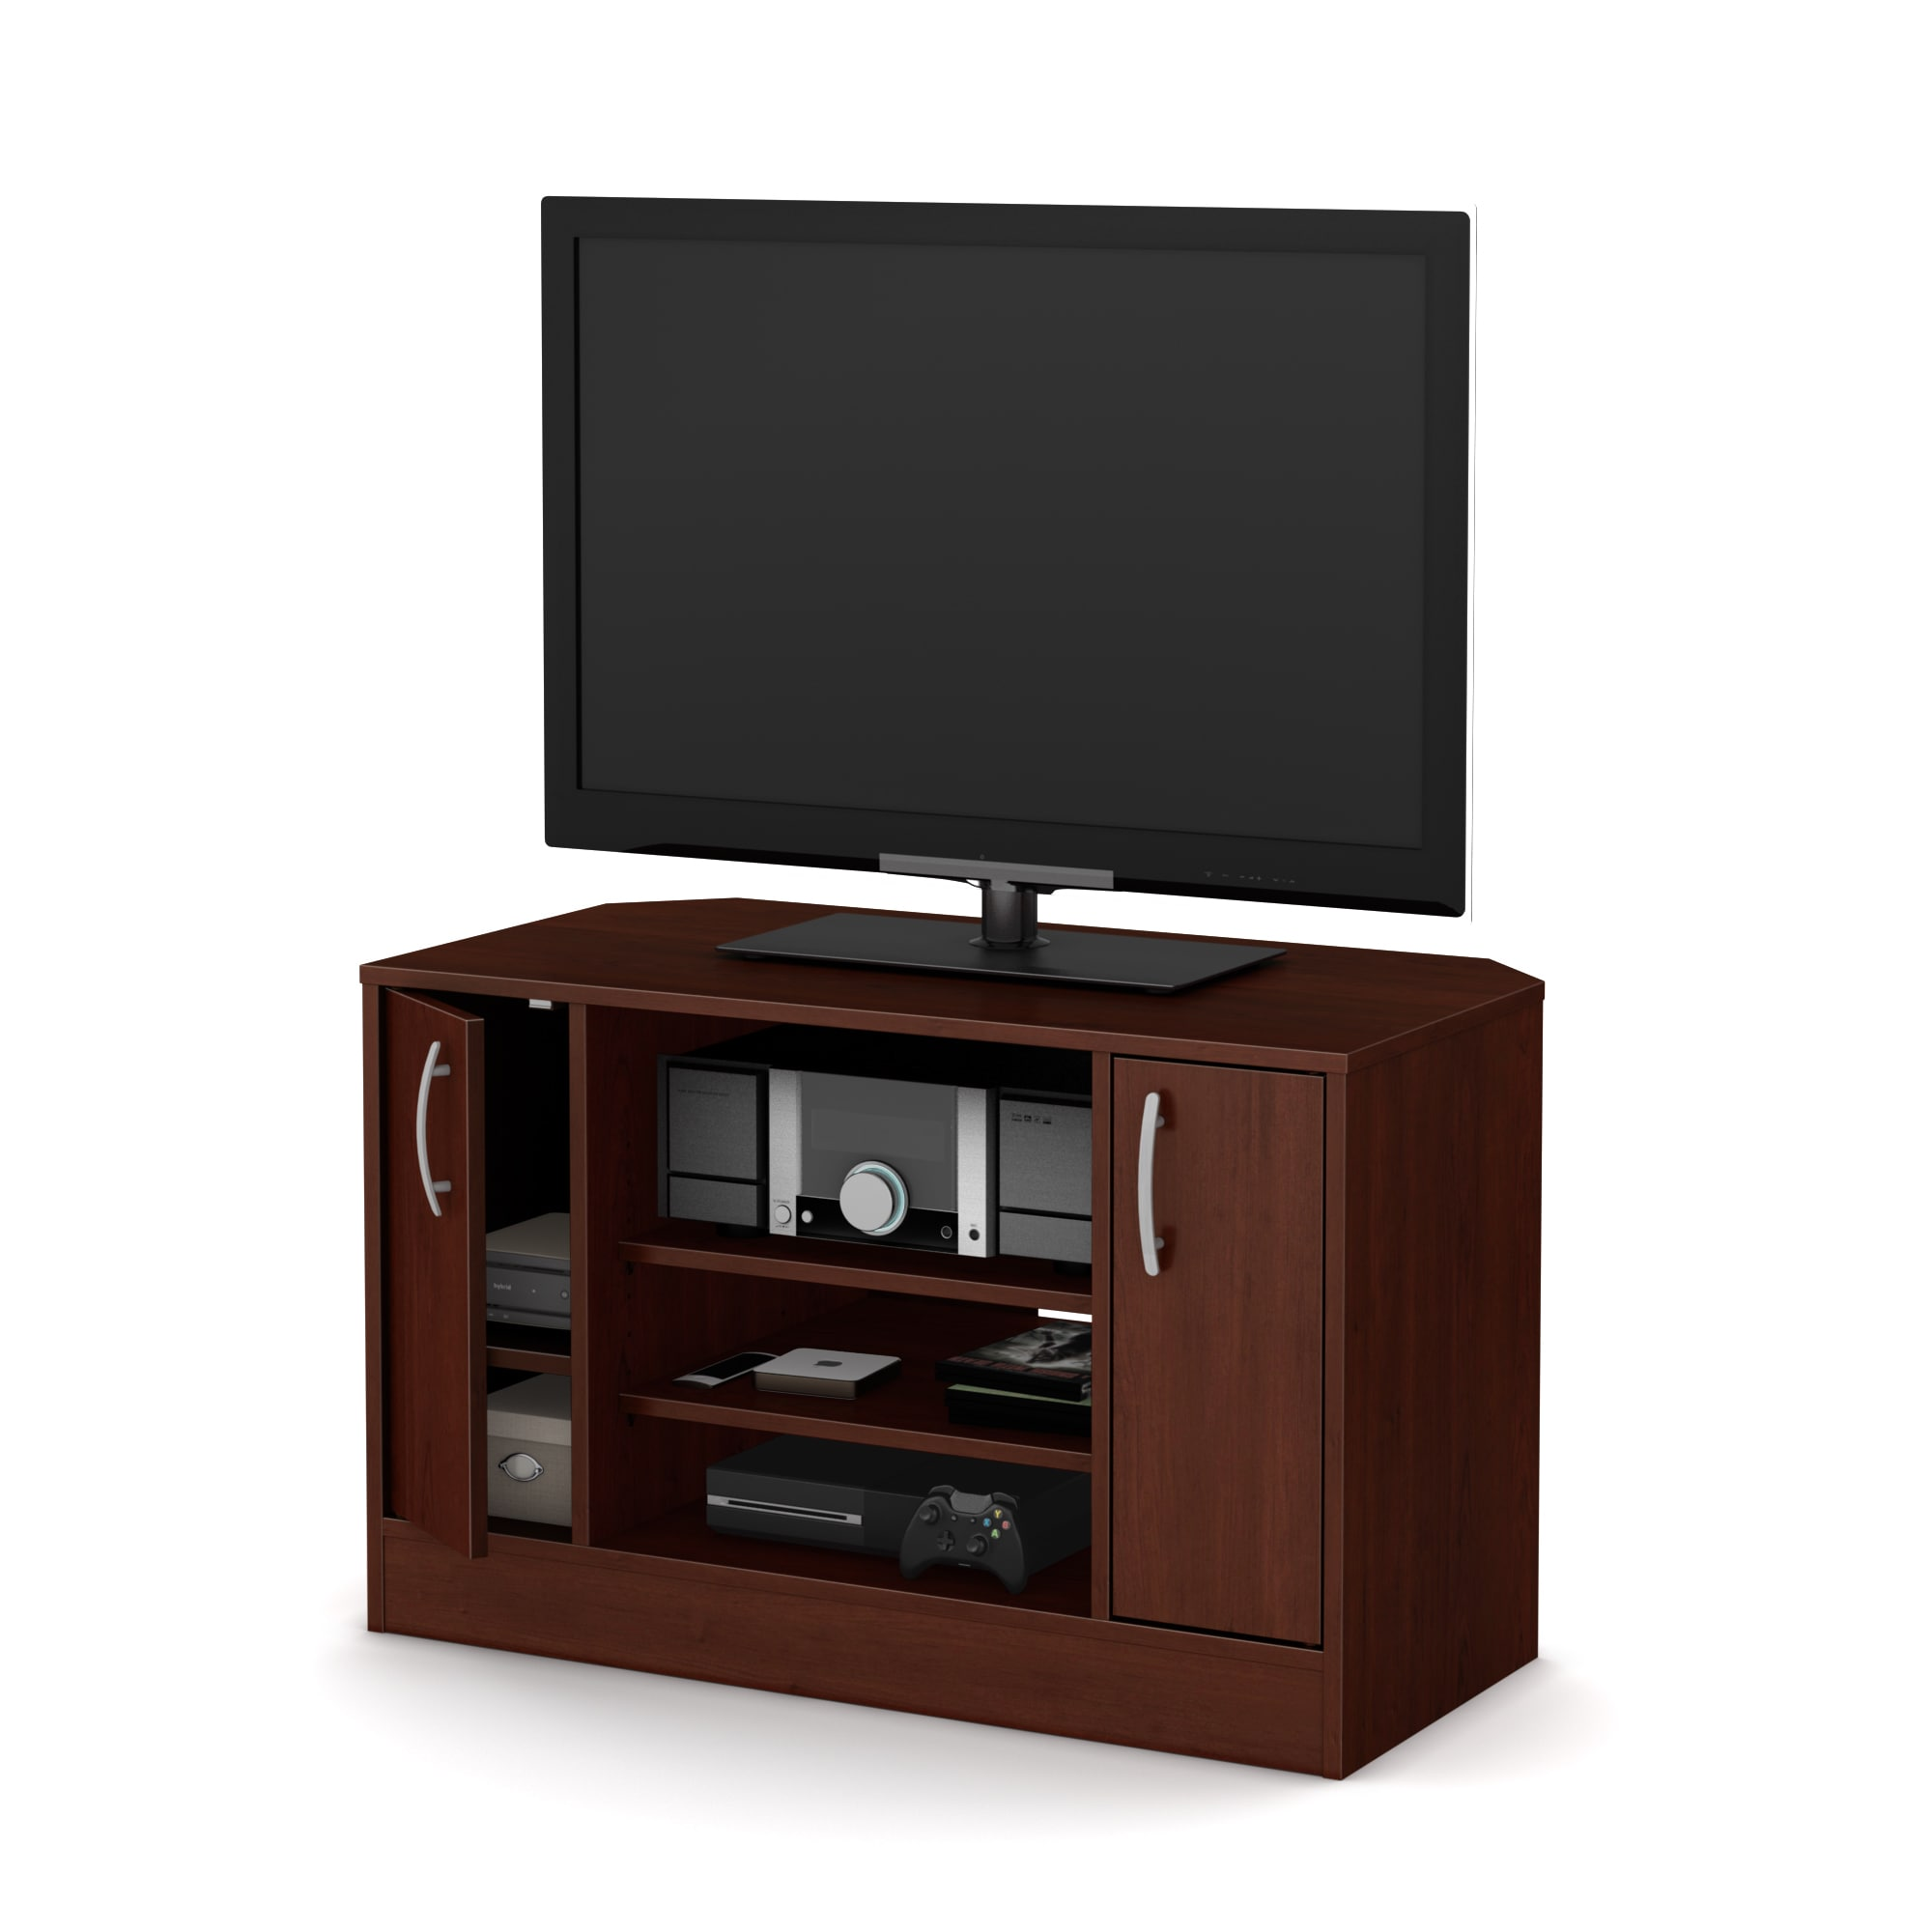 Shop South Shore Axess Corner TV Stand With Doors For TVs Up To 42u0027u0027   Free  Shipping Today   Overstock.com   12178298